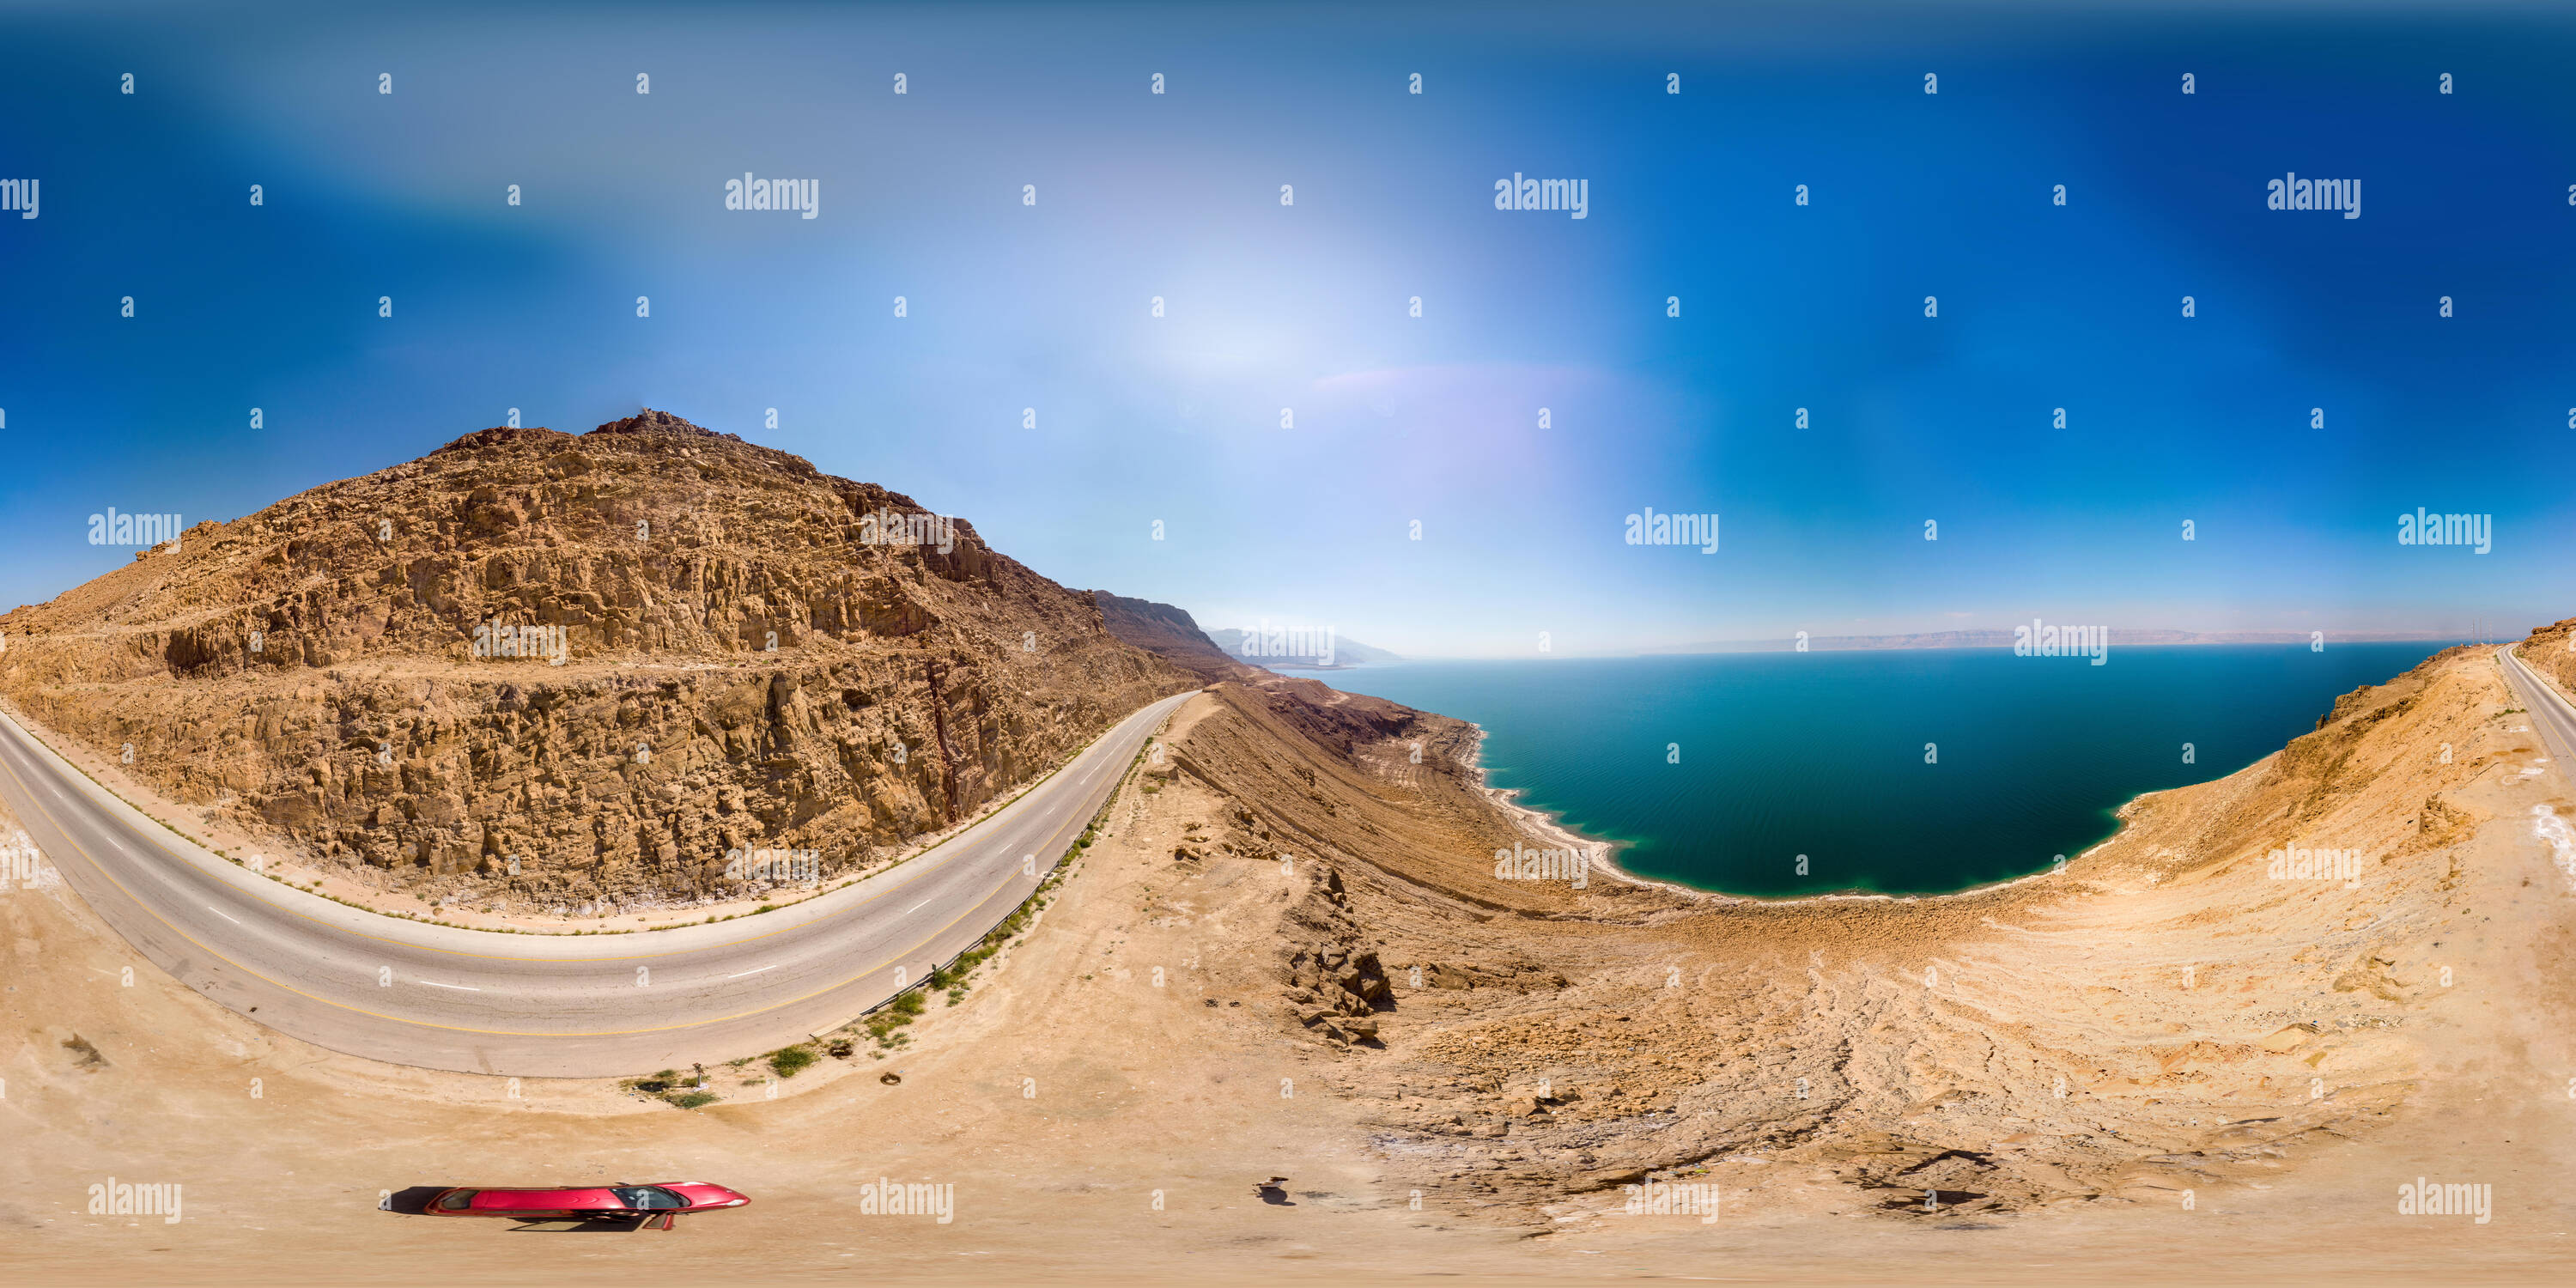 Aerial view from the main road along the Dead Sea, taken with the drone close to the rocks of the ascending mountains, 360 degree panorama image - Stock Image